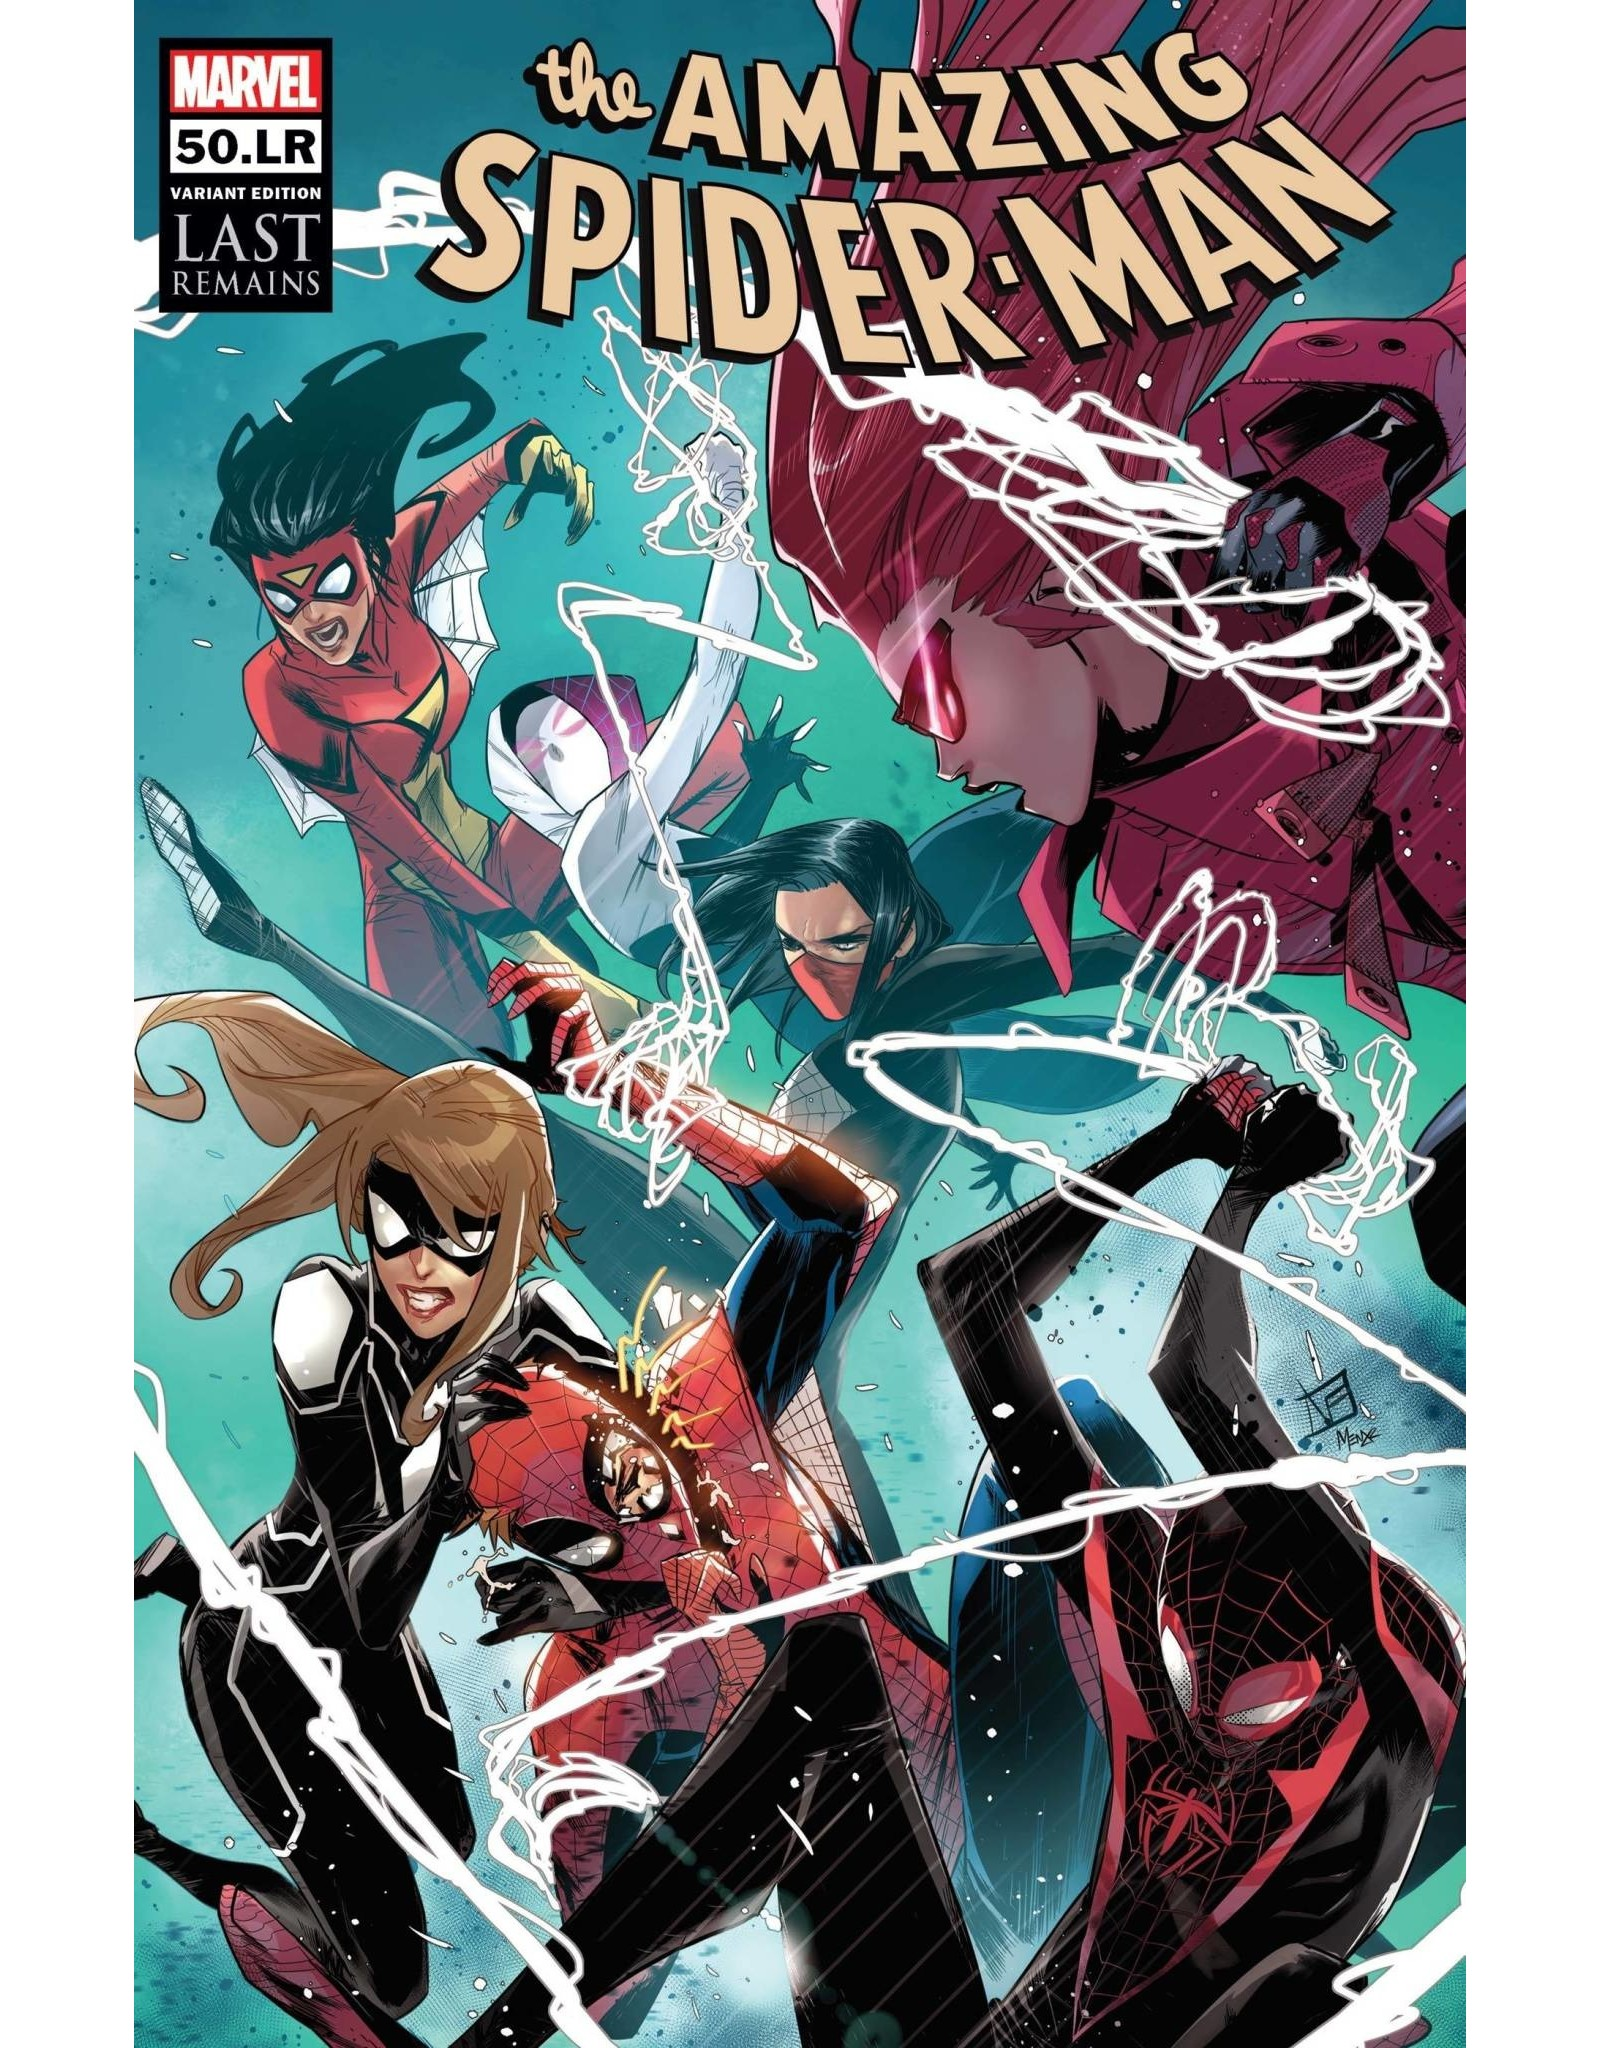 Marvel Comics AMAZING SPIDER-MAN #50.LR VICENTINI VAR